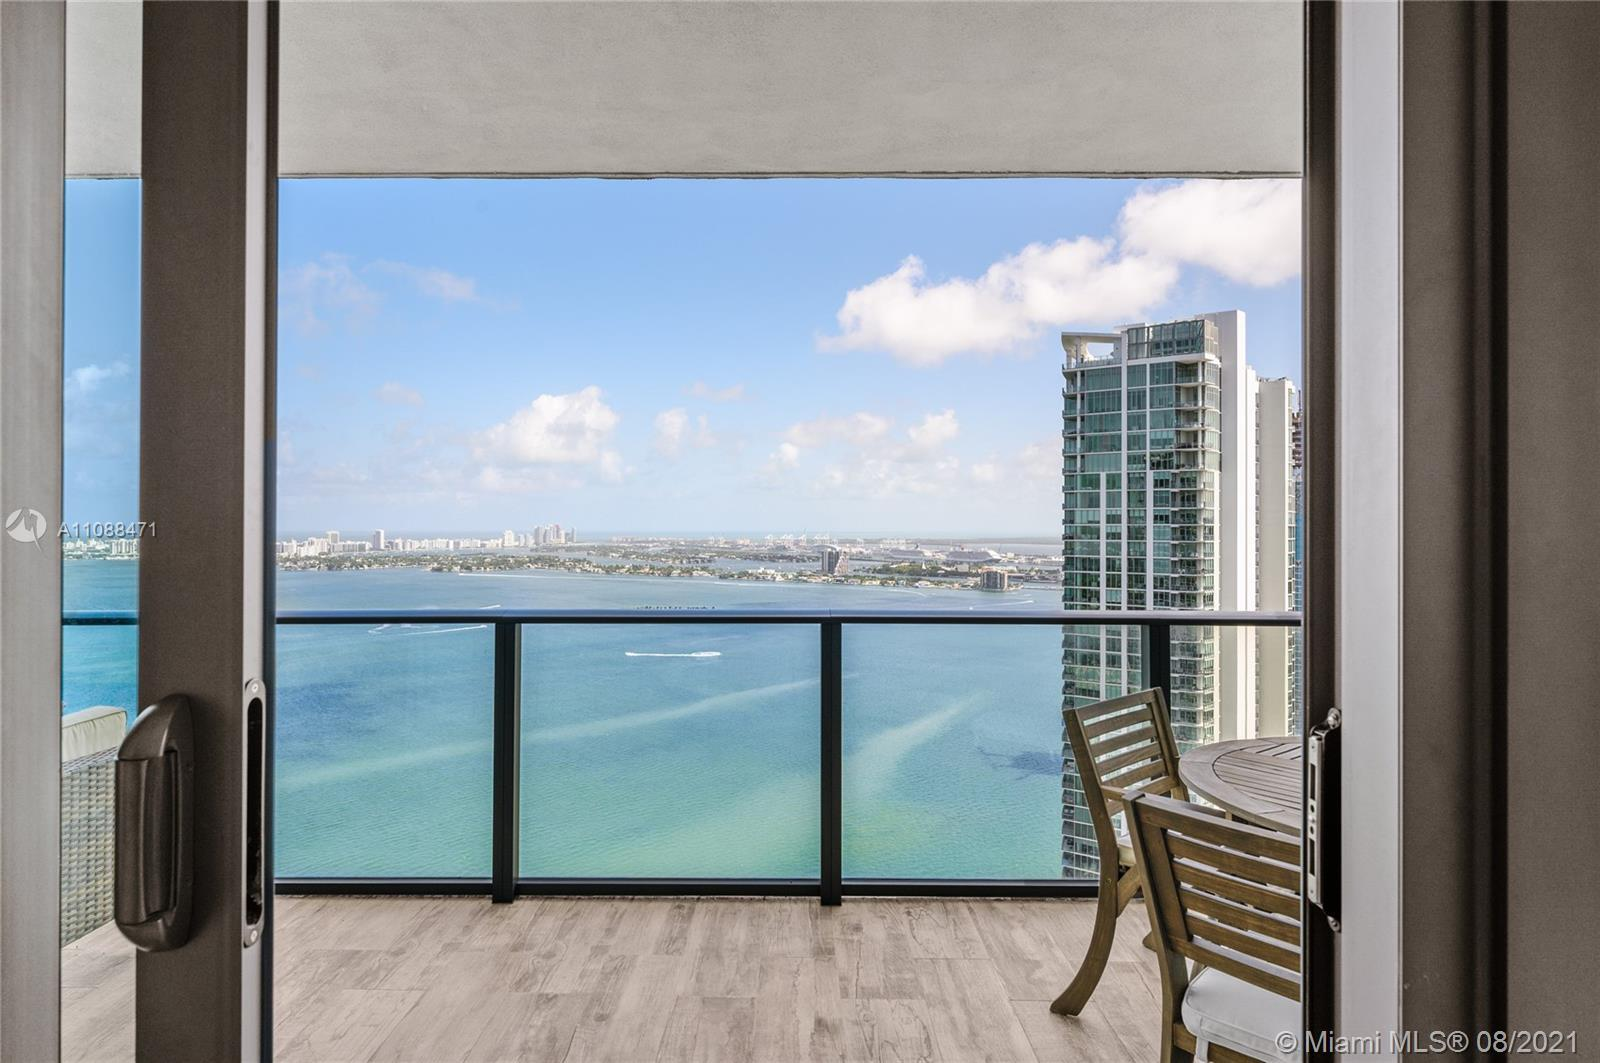 Beautifully Designed 2 bedroom + 2 bathrom Residence, with stunning water views from everywhere. Pri